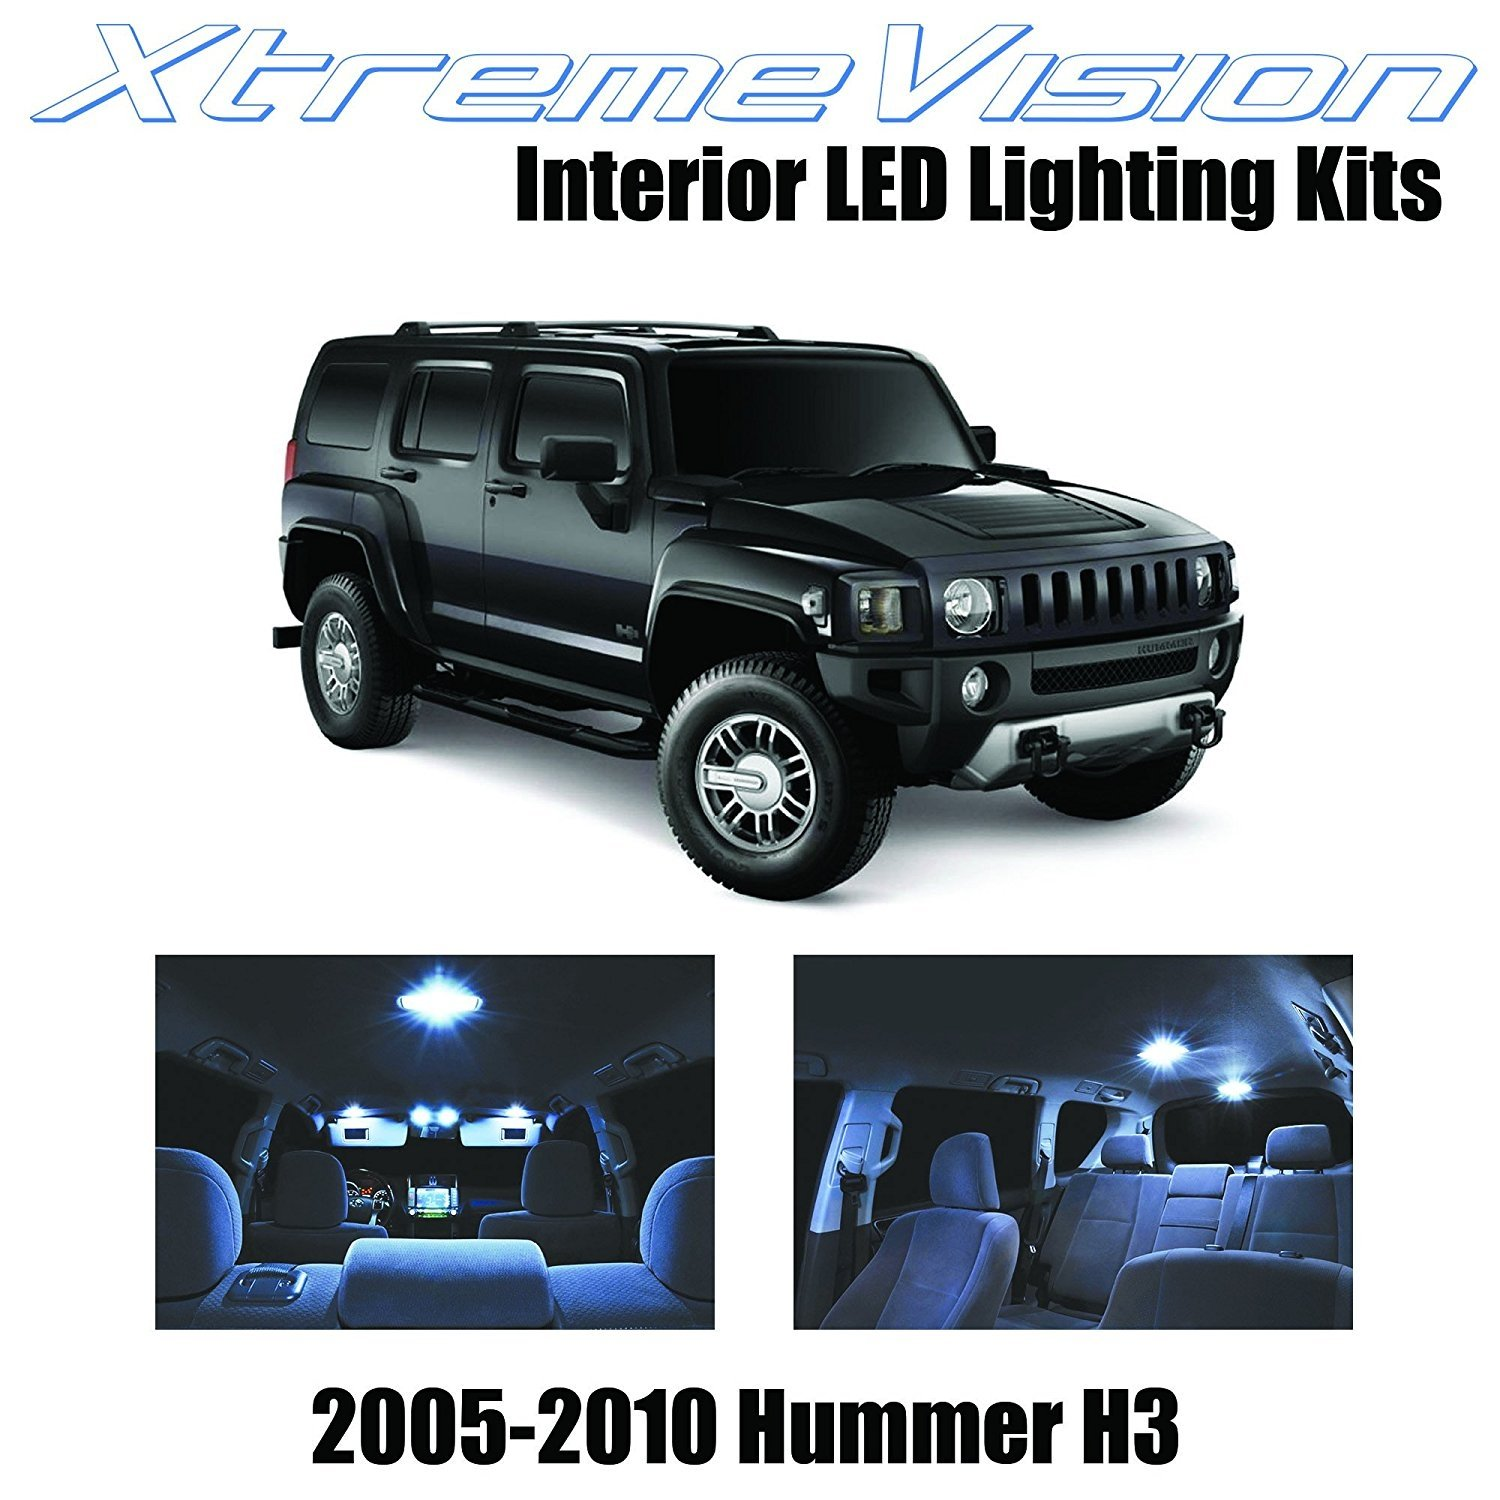 XtremeVision LED for Hummer H3 2005-2010 (15 Pieces) Cool White Premium Interior LED Kit Package+installation